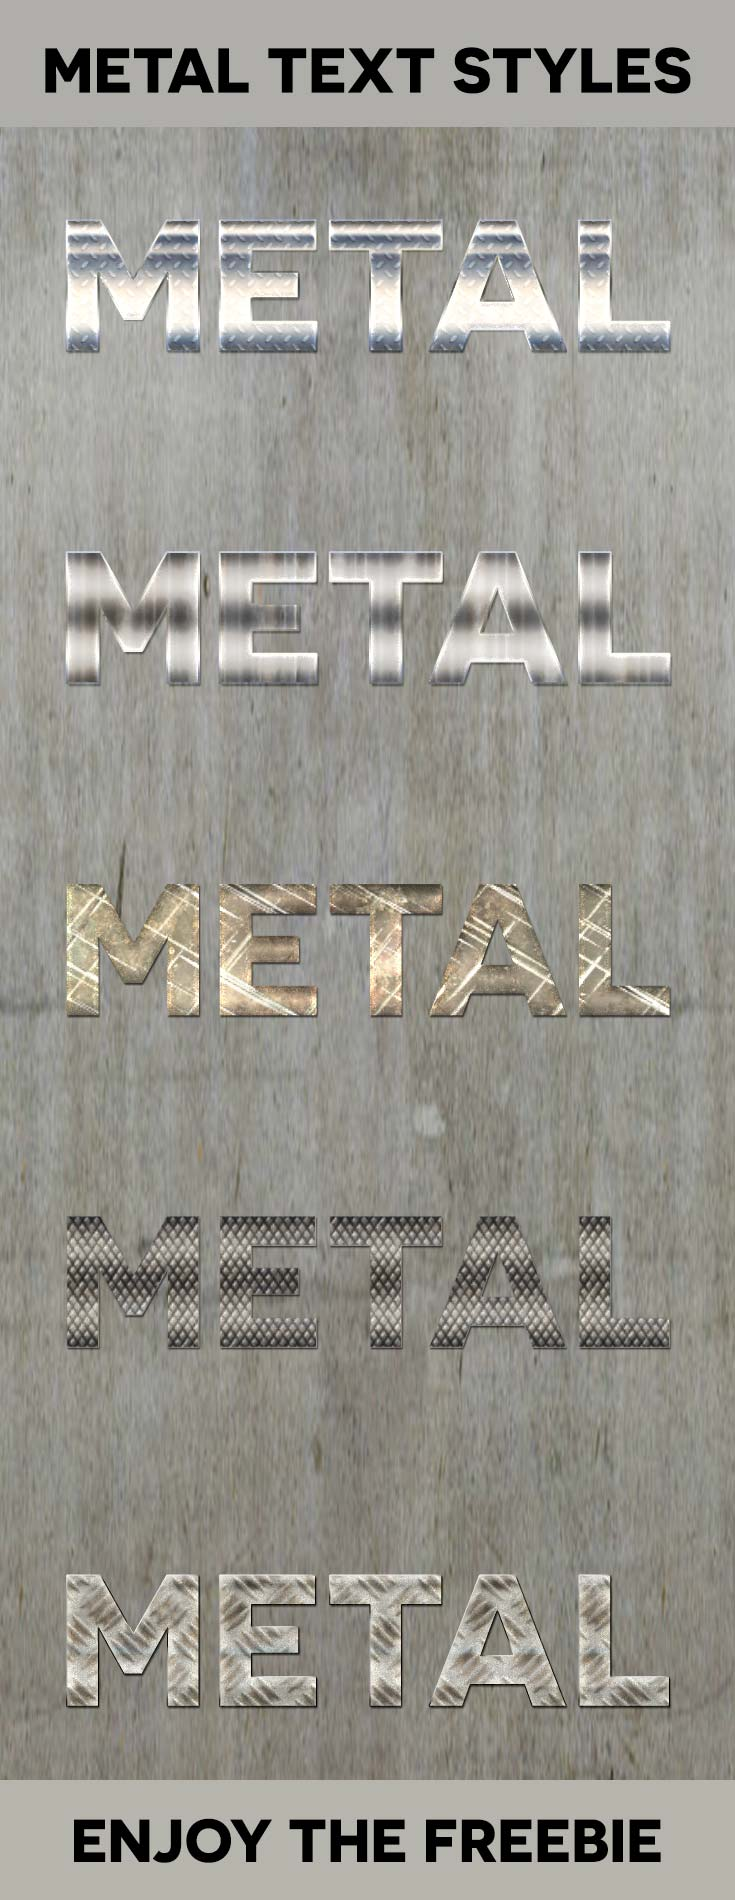 Free Metal Text Styles